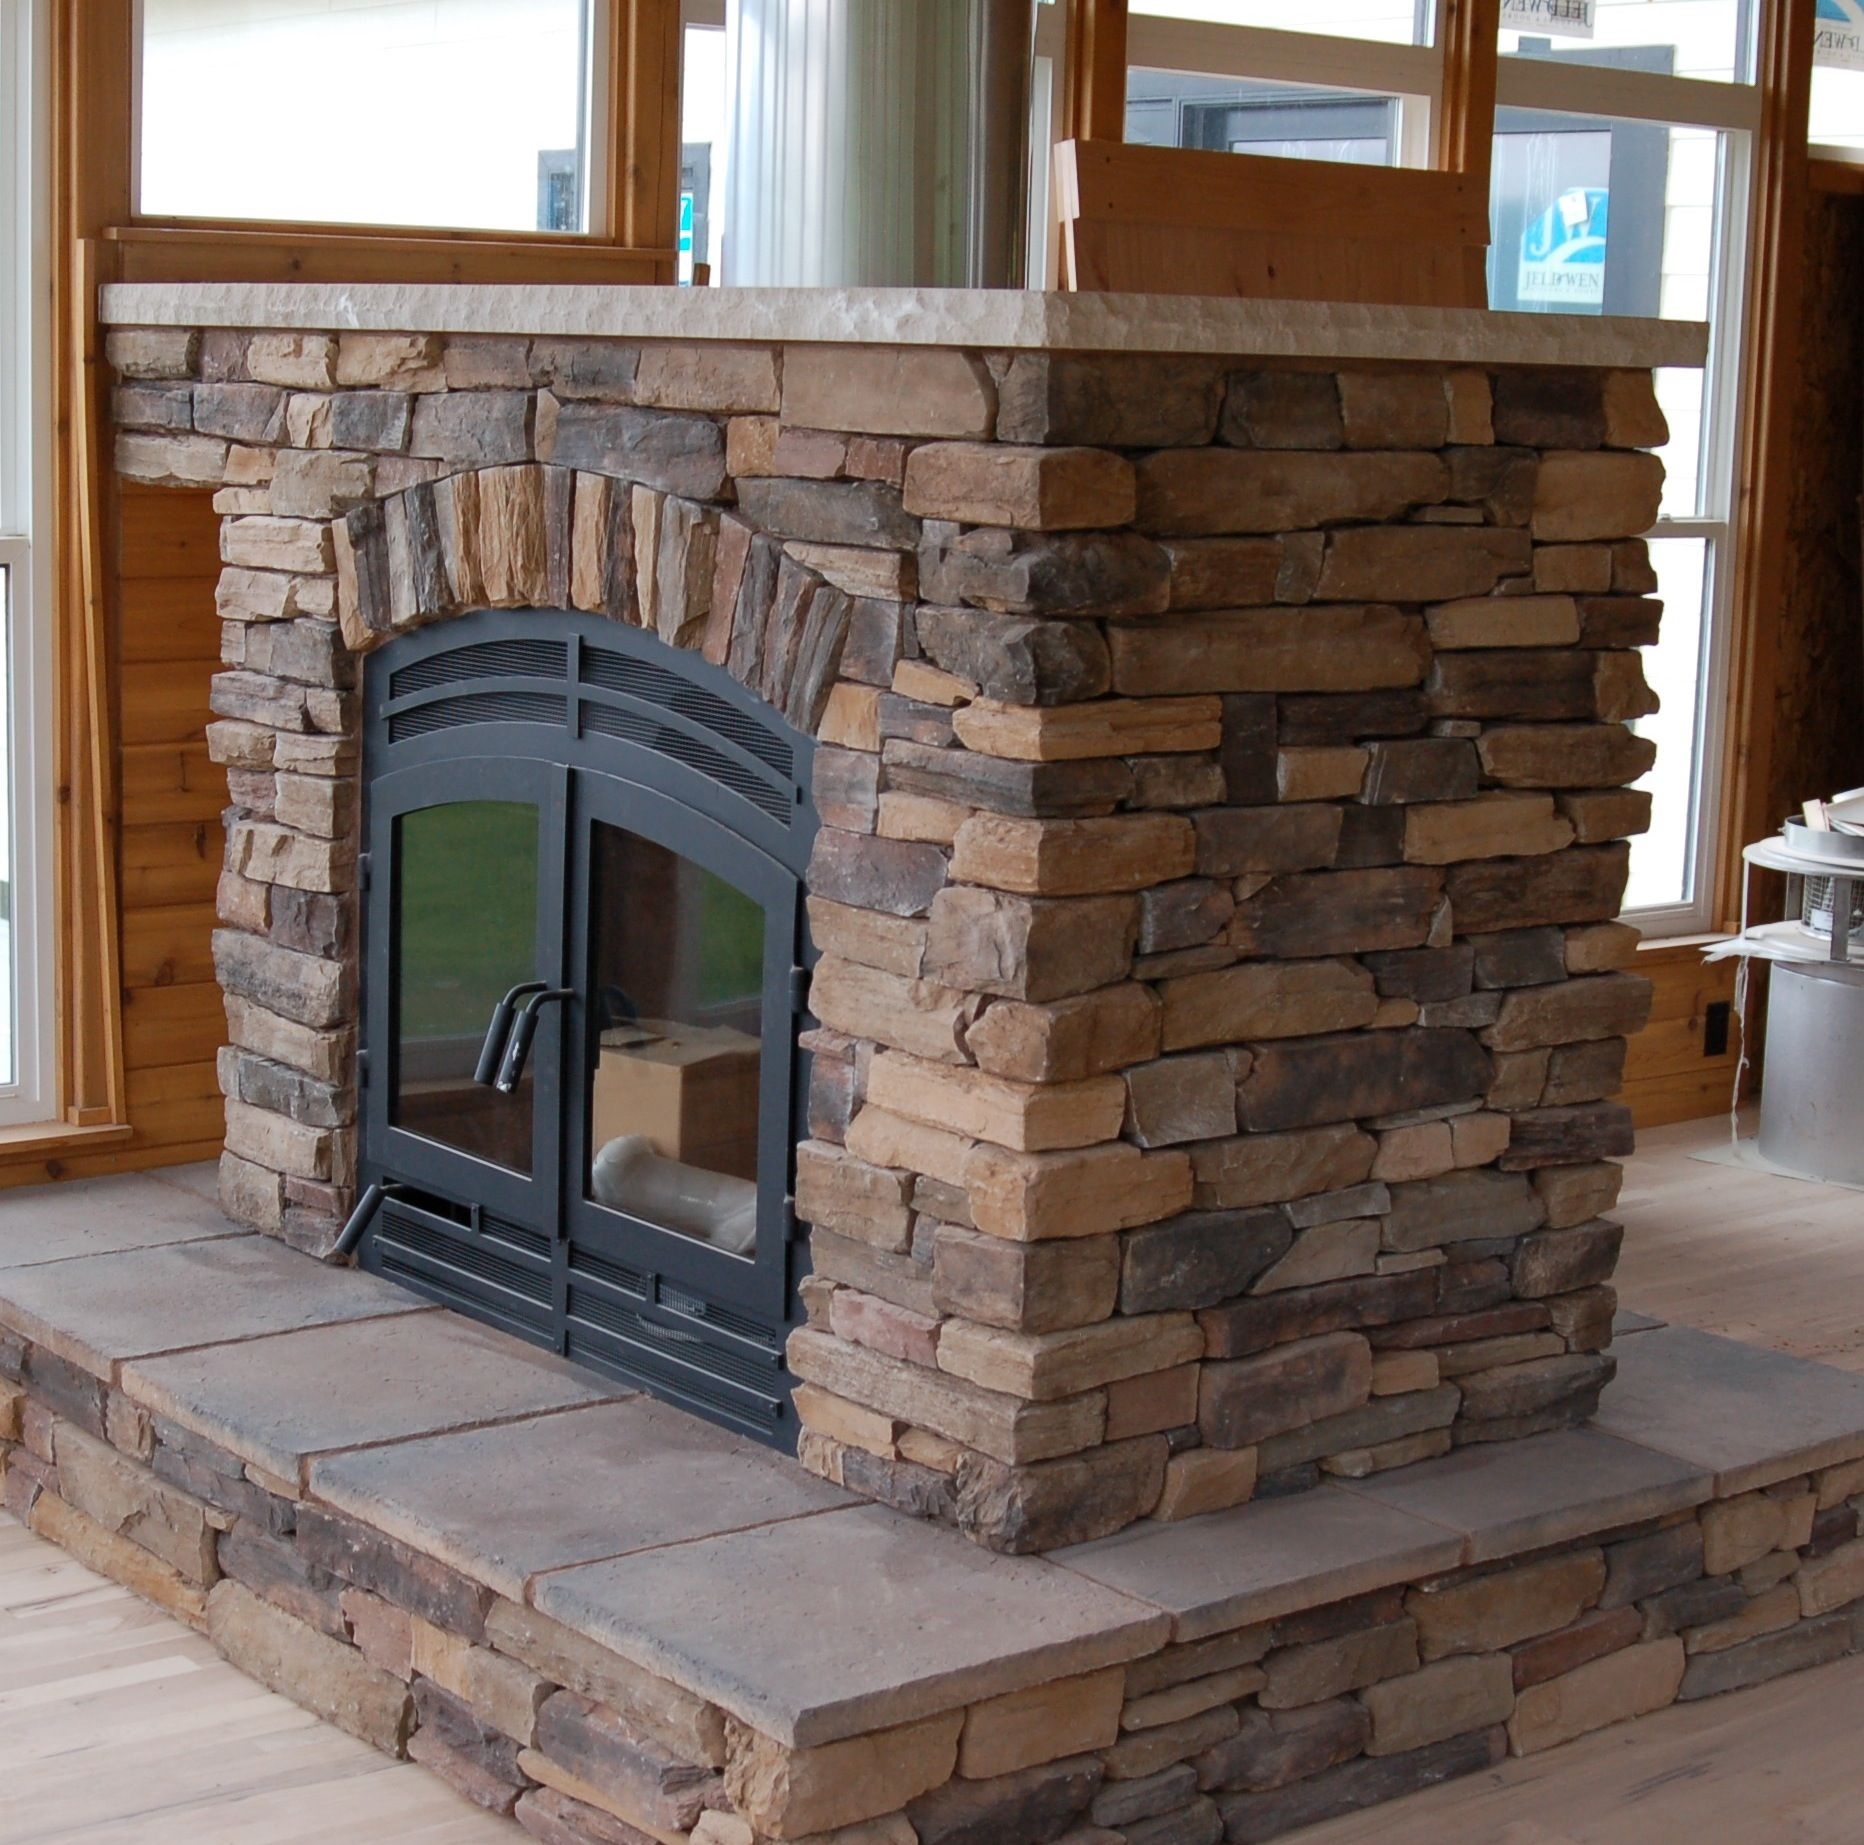 Traditional See Thru Wood Double Sided Fireplace With Brick Exposed Panels And Wooden Frames